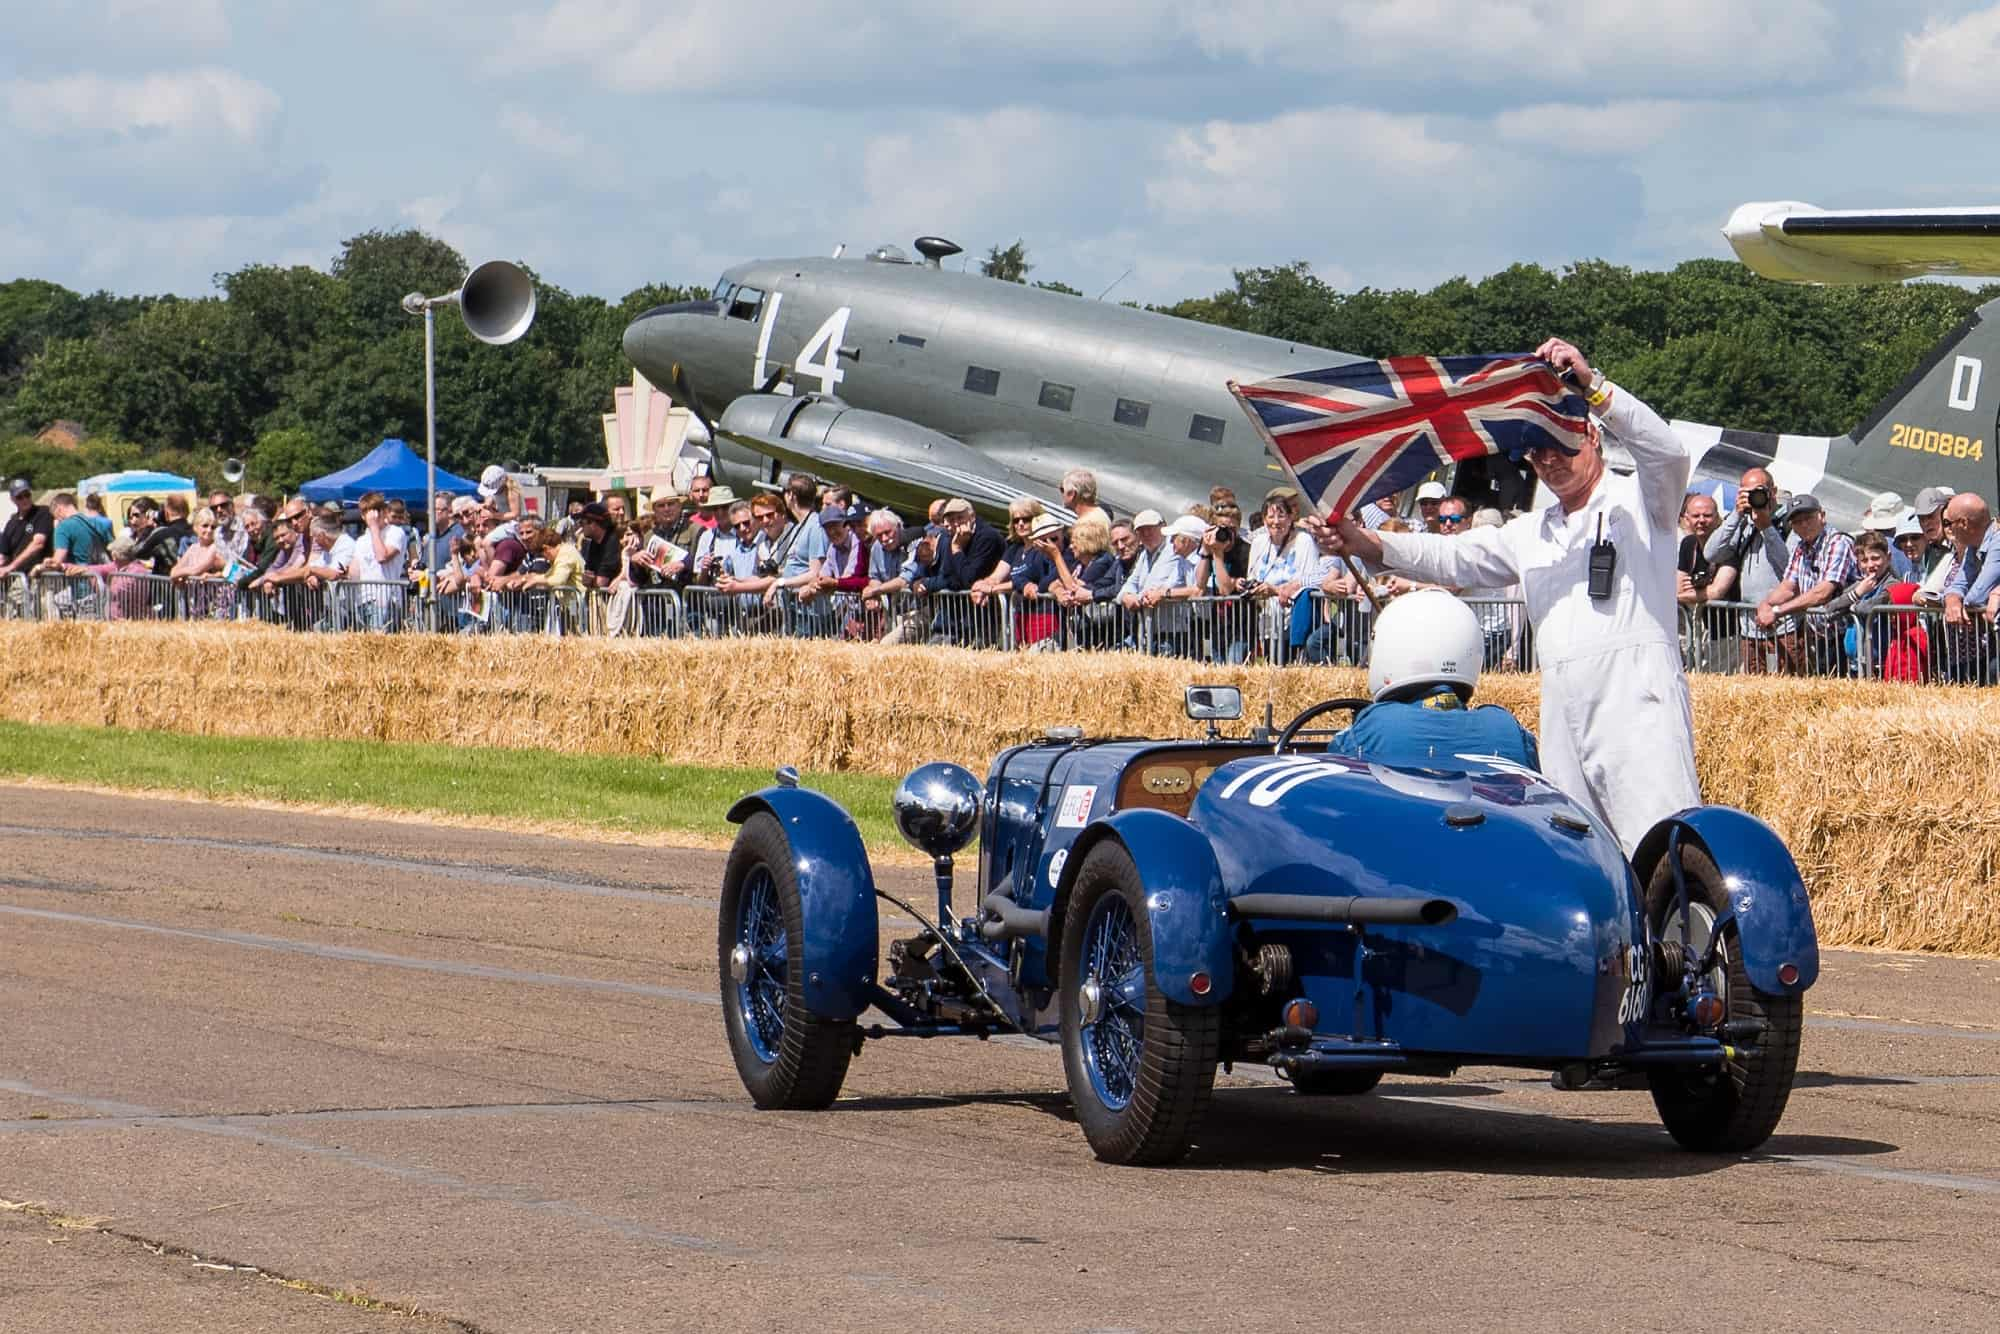 Win a Family Ticket to Classic & Sports Car show worth £55